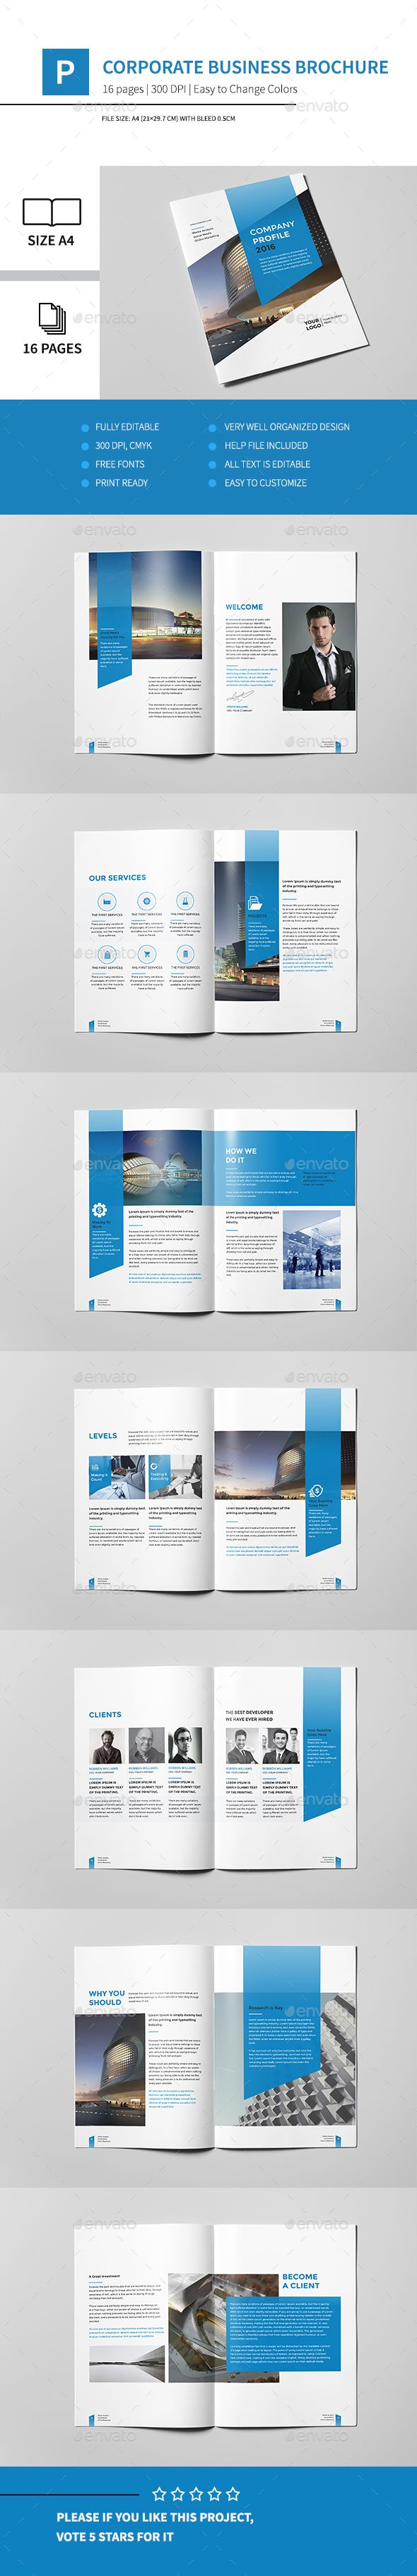 Corporate Business Brochure 16 Pages A4 Template InDesign INDD #design Download…